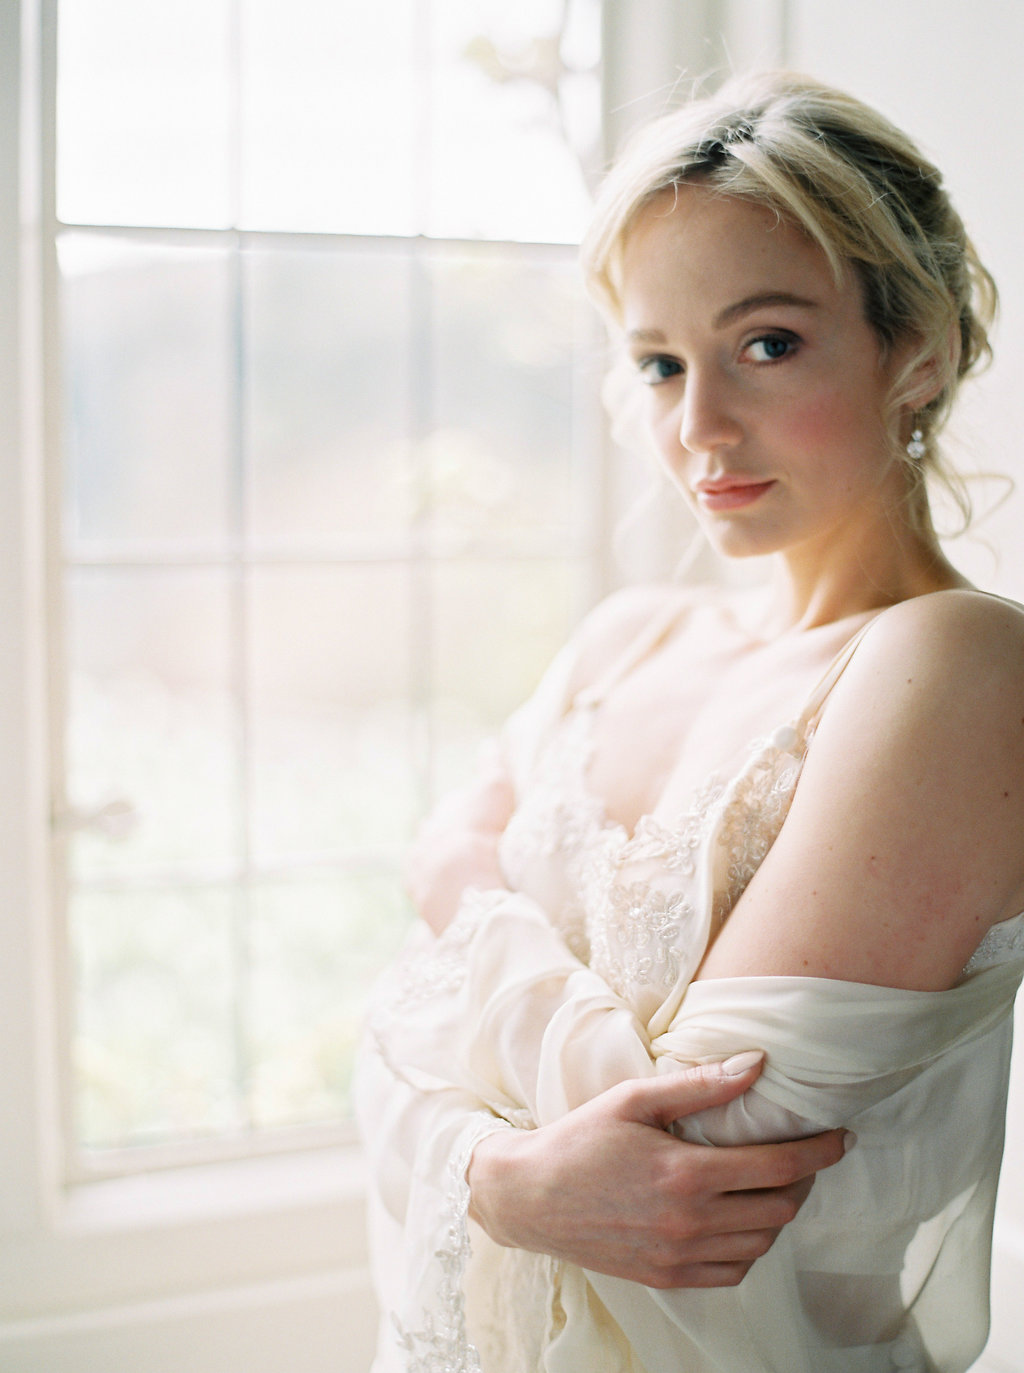 Bridal makeup and hair plus accessories by victoria fergusson at Hotel Endsleigh (61).jpg